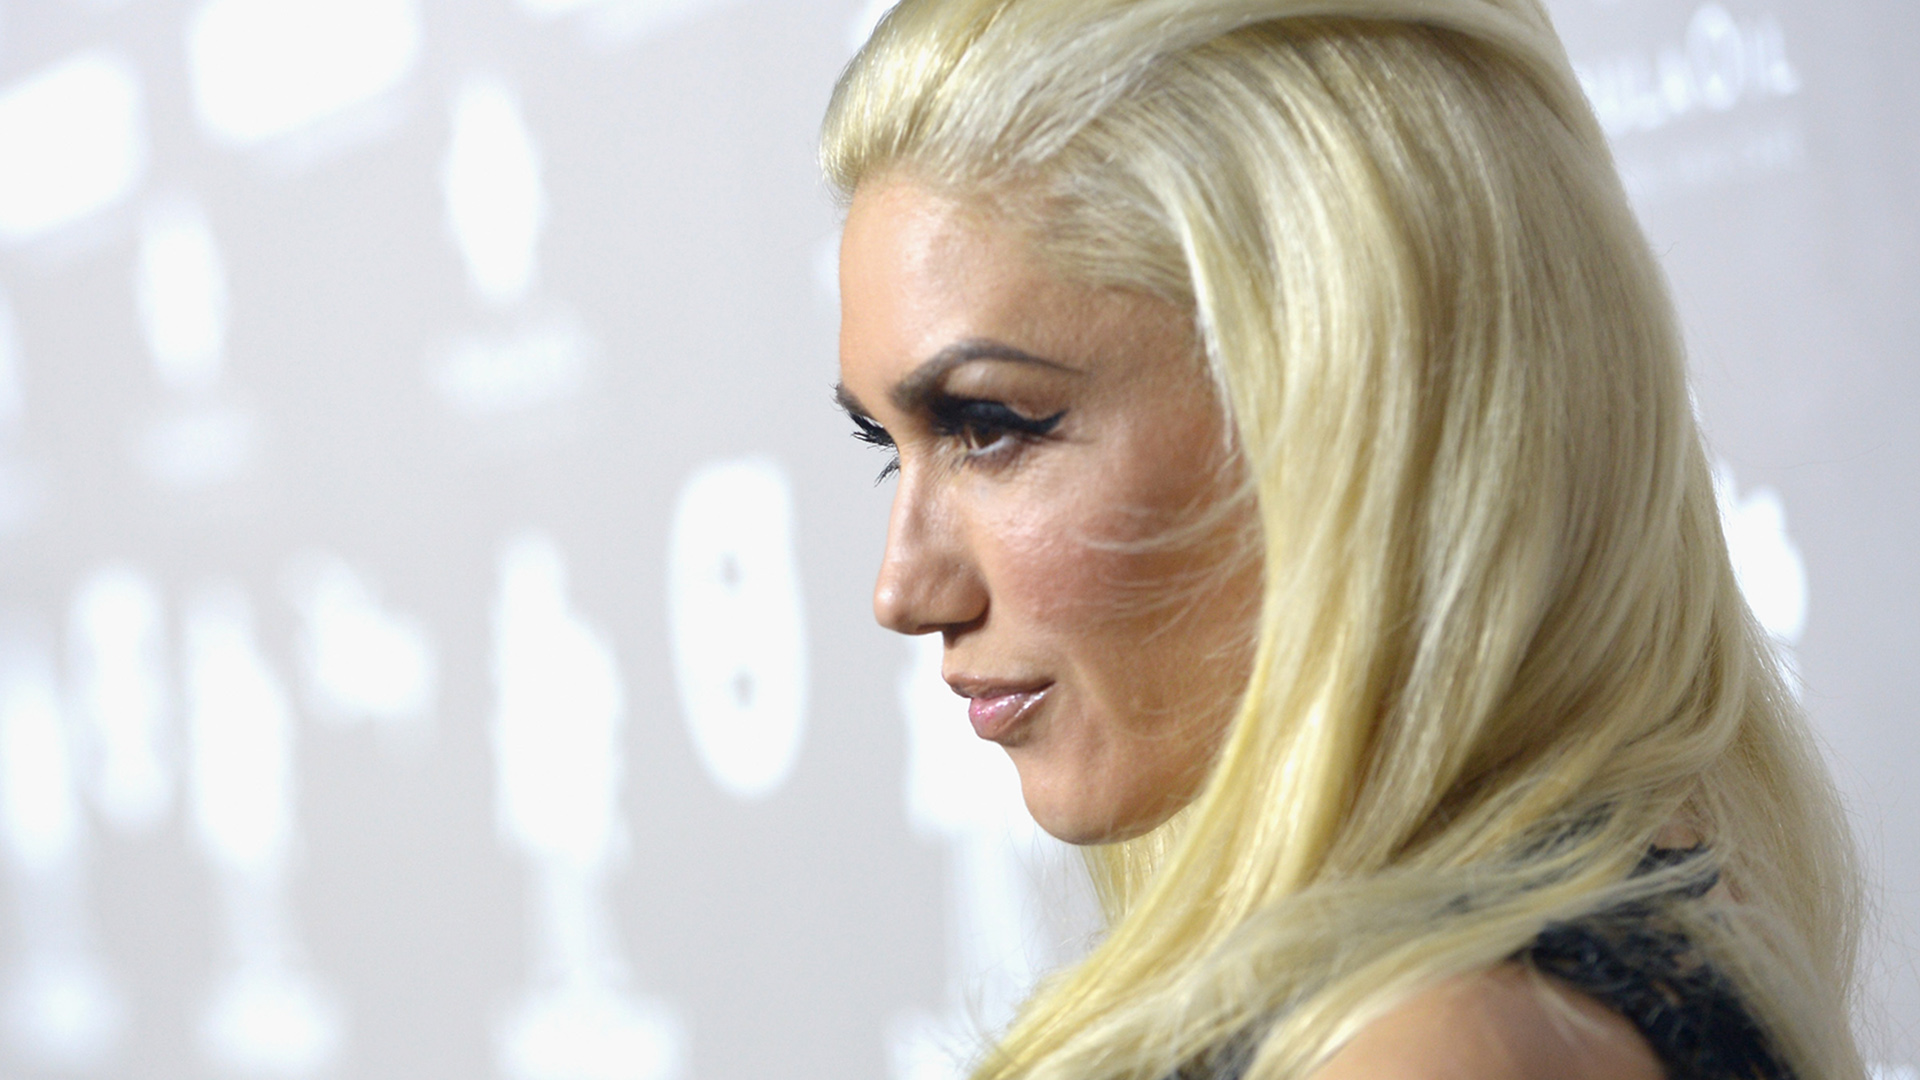 Gwen Stefani opens up on divorce: 'I went through months and months of torture' - TODAY.com